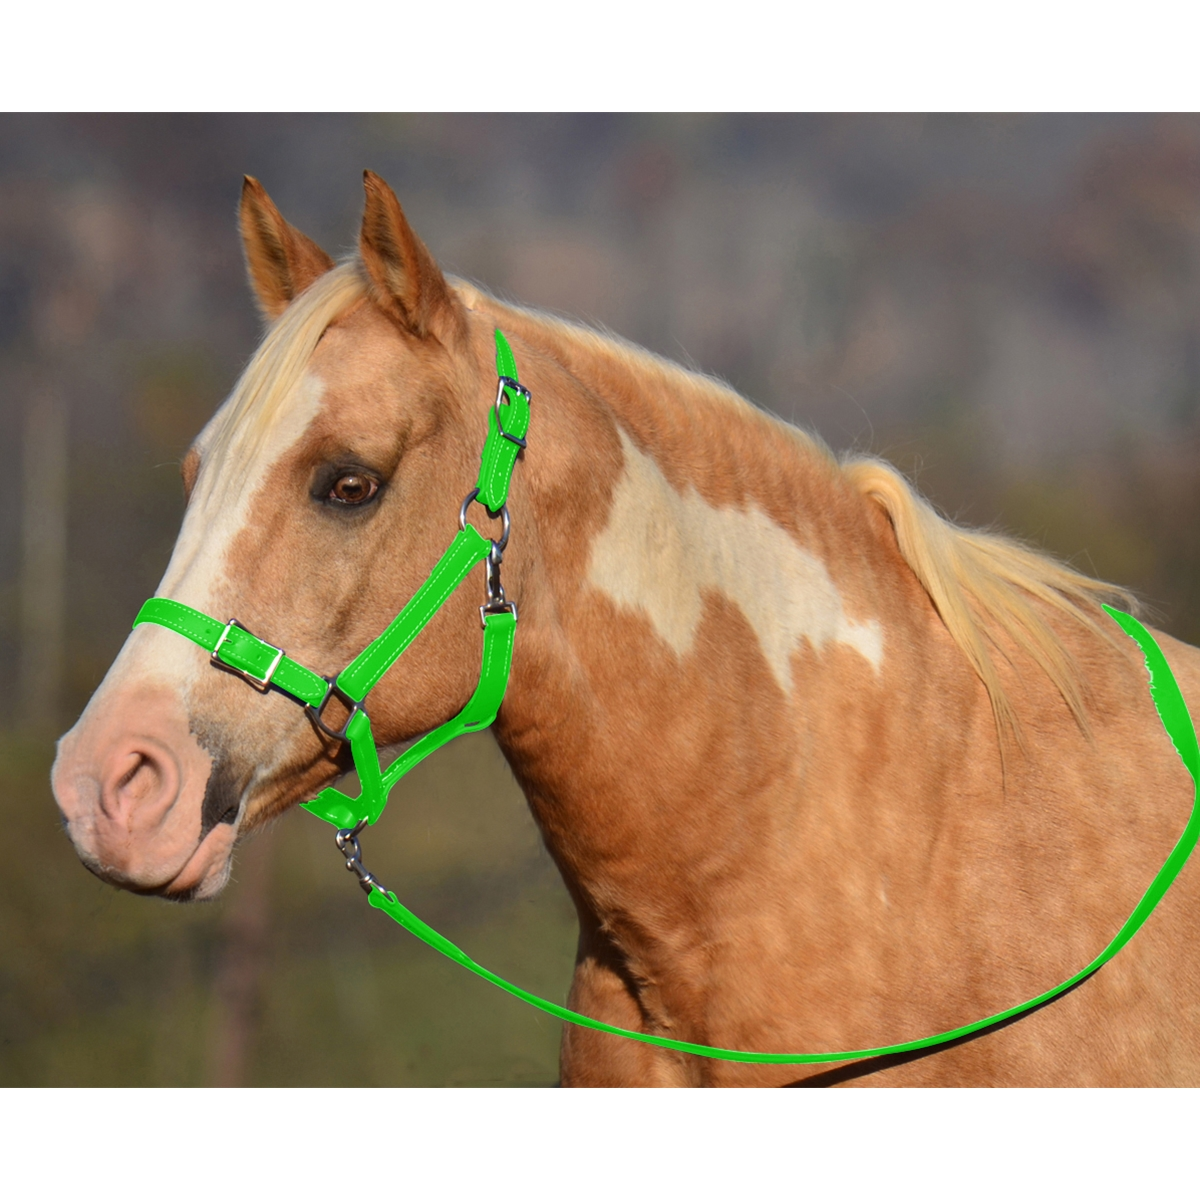 Buy Lime Green Buckle Nose Safety Halter For Sale At Two Horse Tack